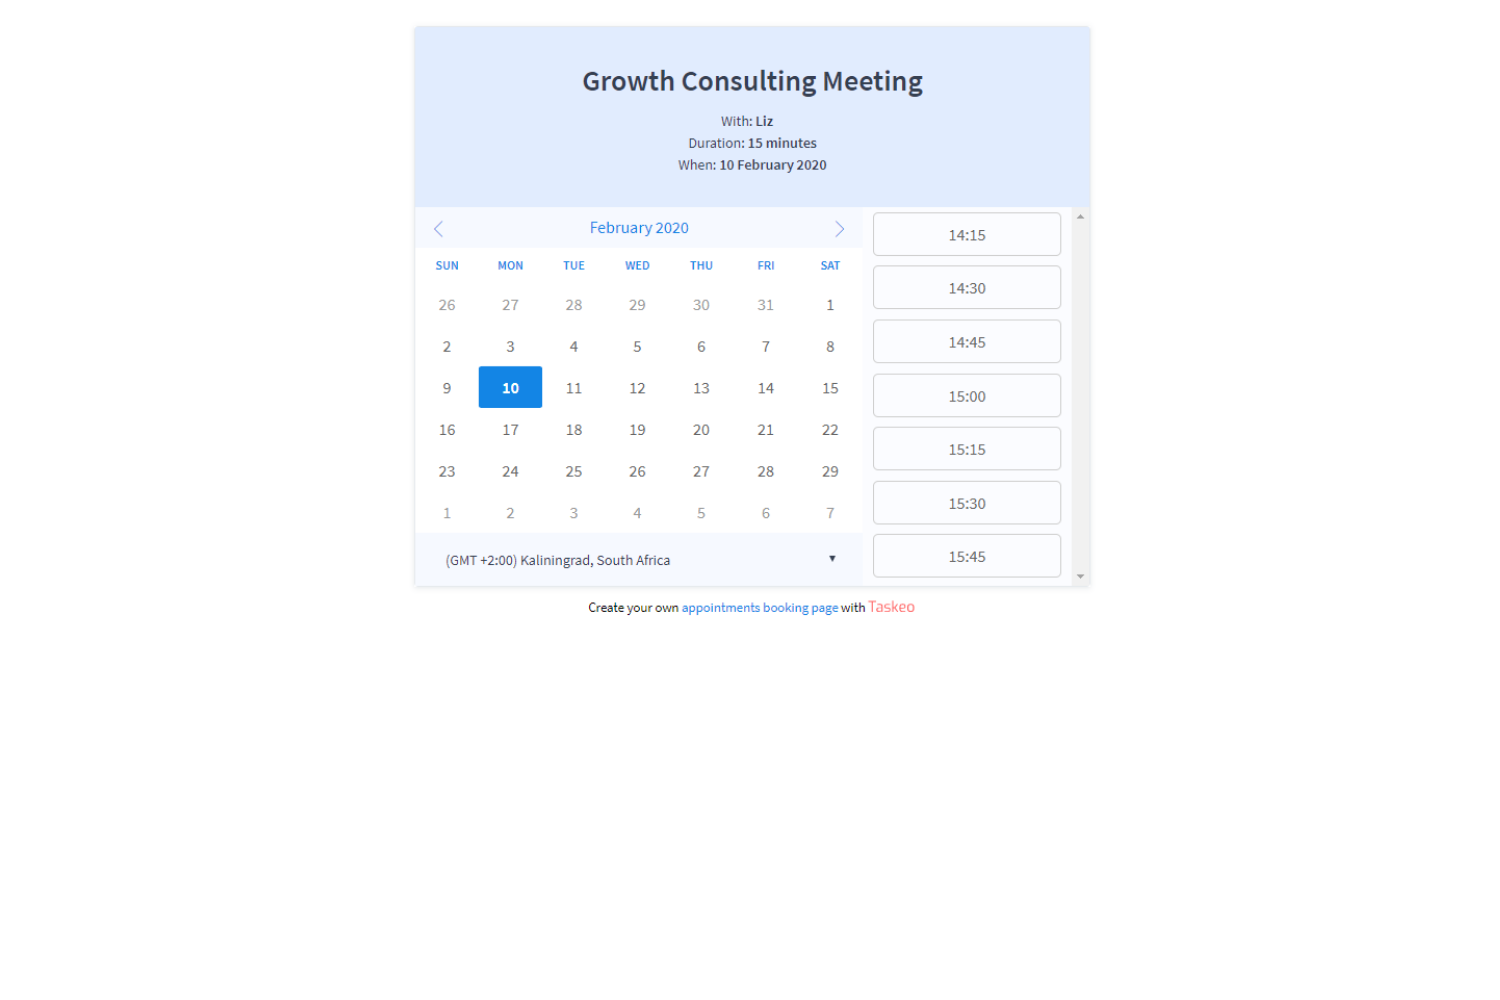 Built-in appointment planner simplifies meeting management